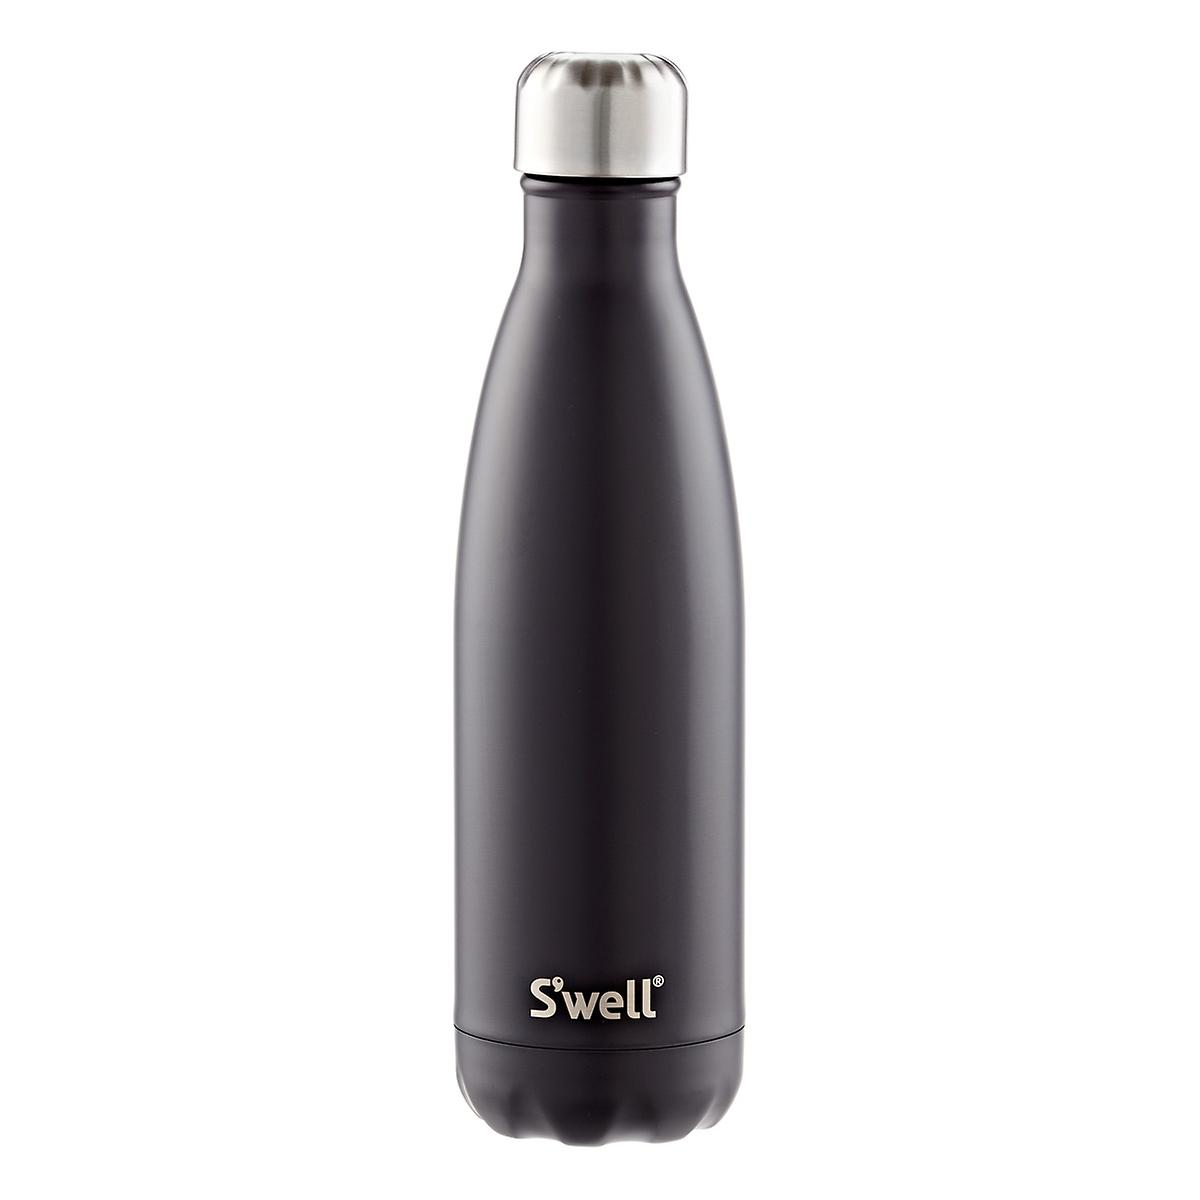 London Chimney 17 oz. S'well Water Bottle